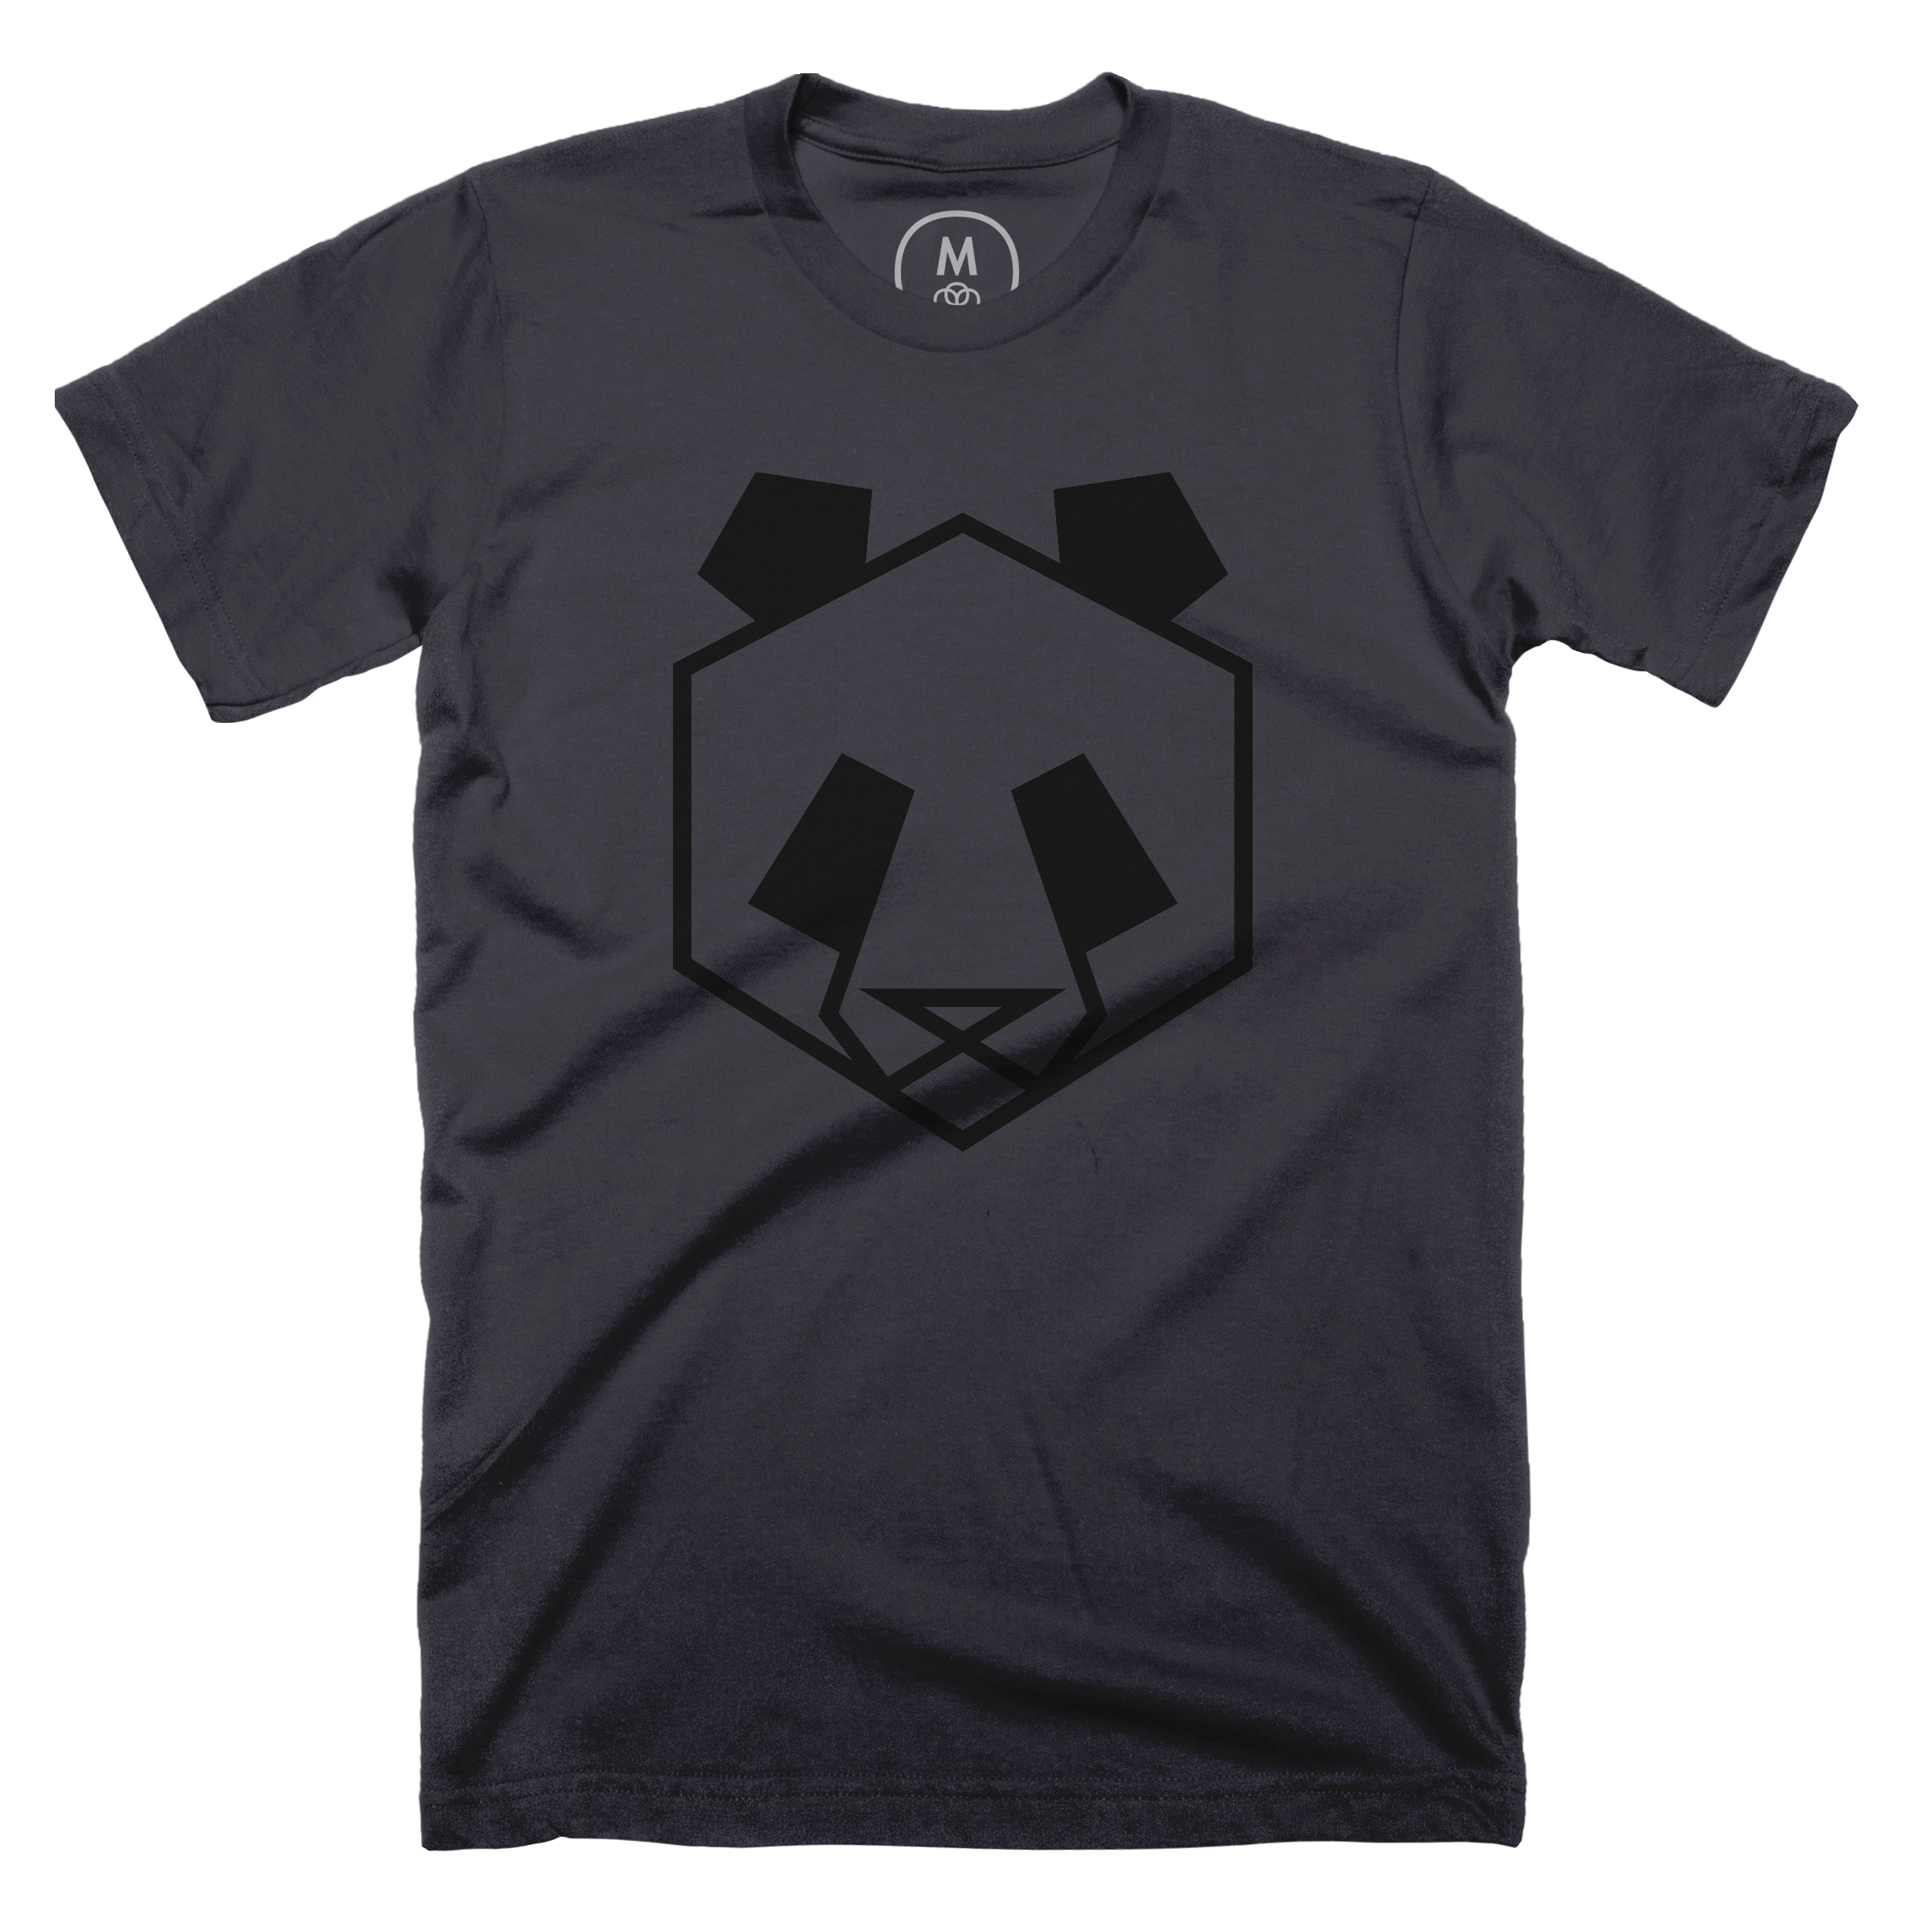 Geo Panda Heavy Metal (Men's)